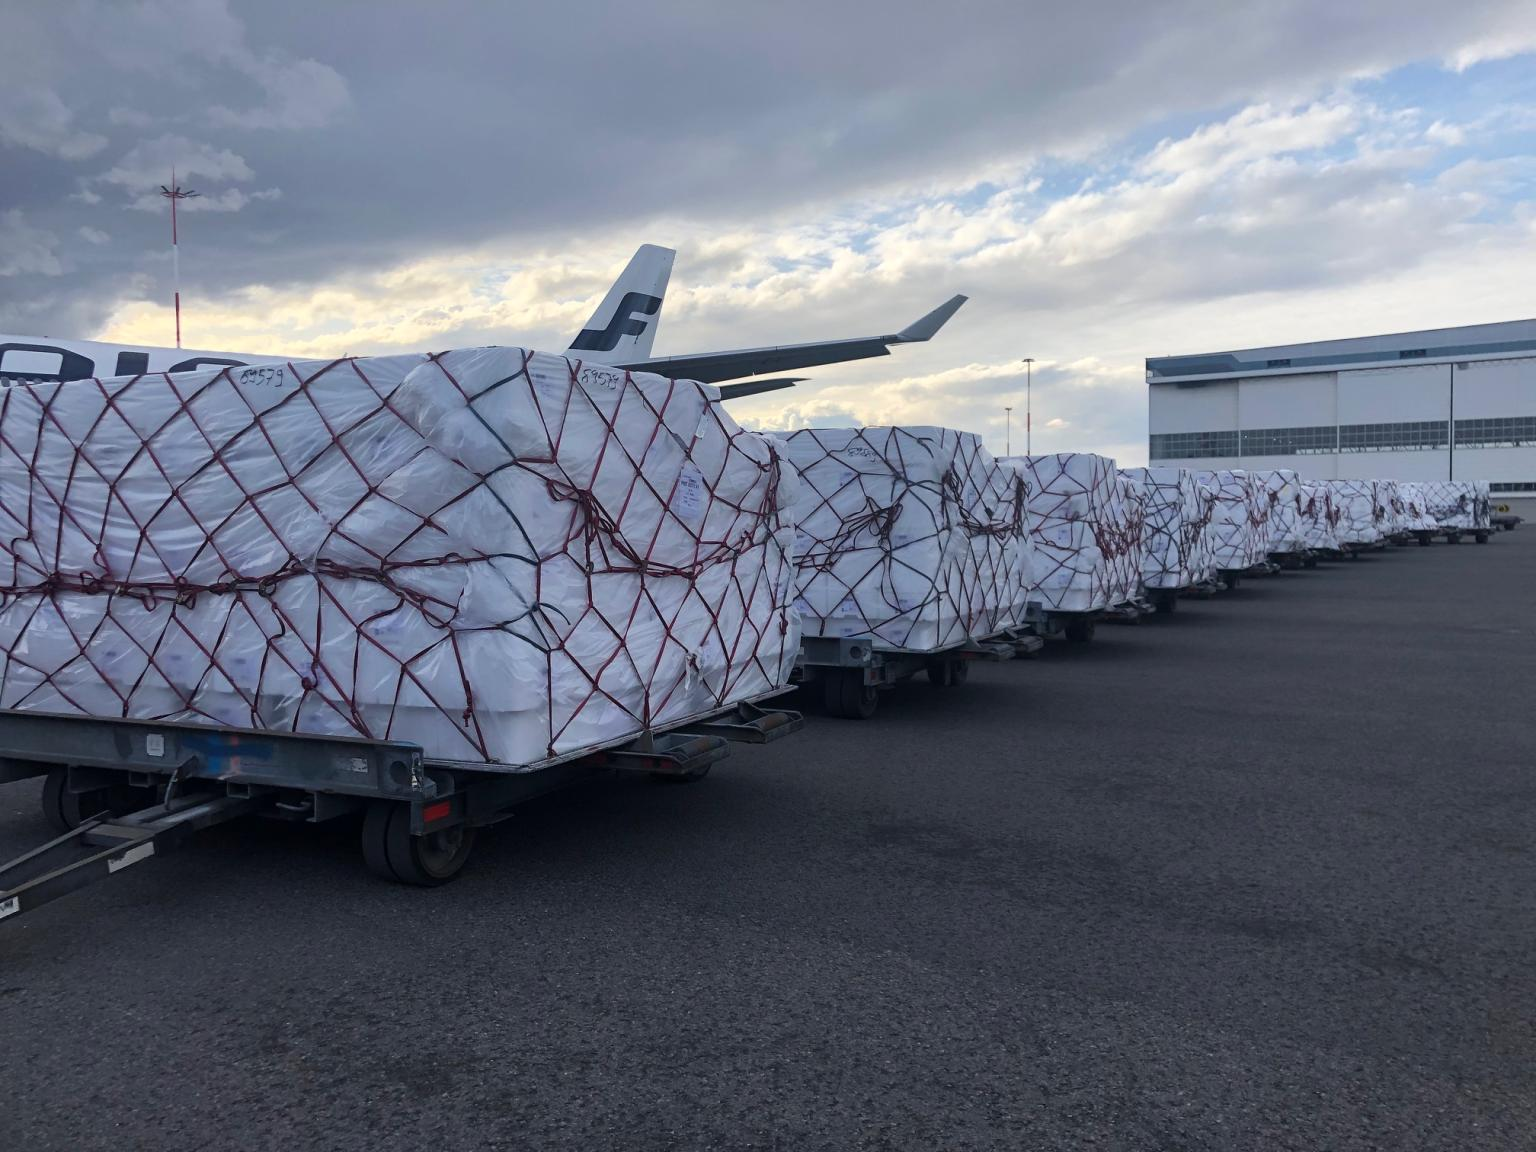 Finnair is currently operating more than 50 one way cargo flights a week.